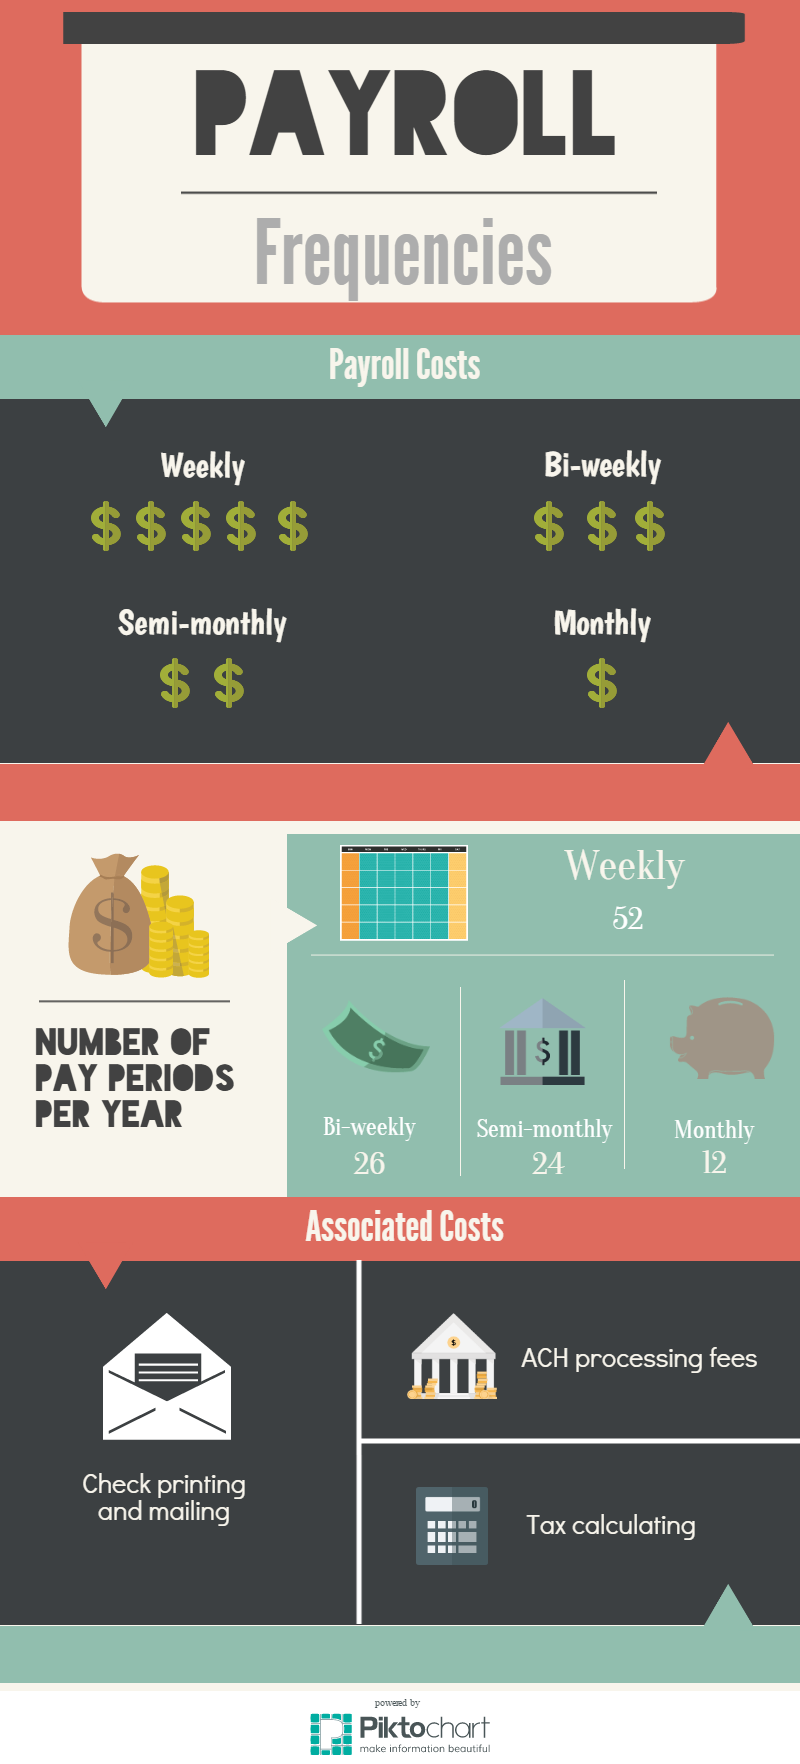 Payroll Frequencies Payroll Hr Infographic Hr Infographic Payroll Payroll Taxes